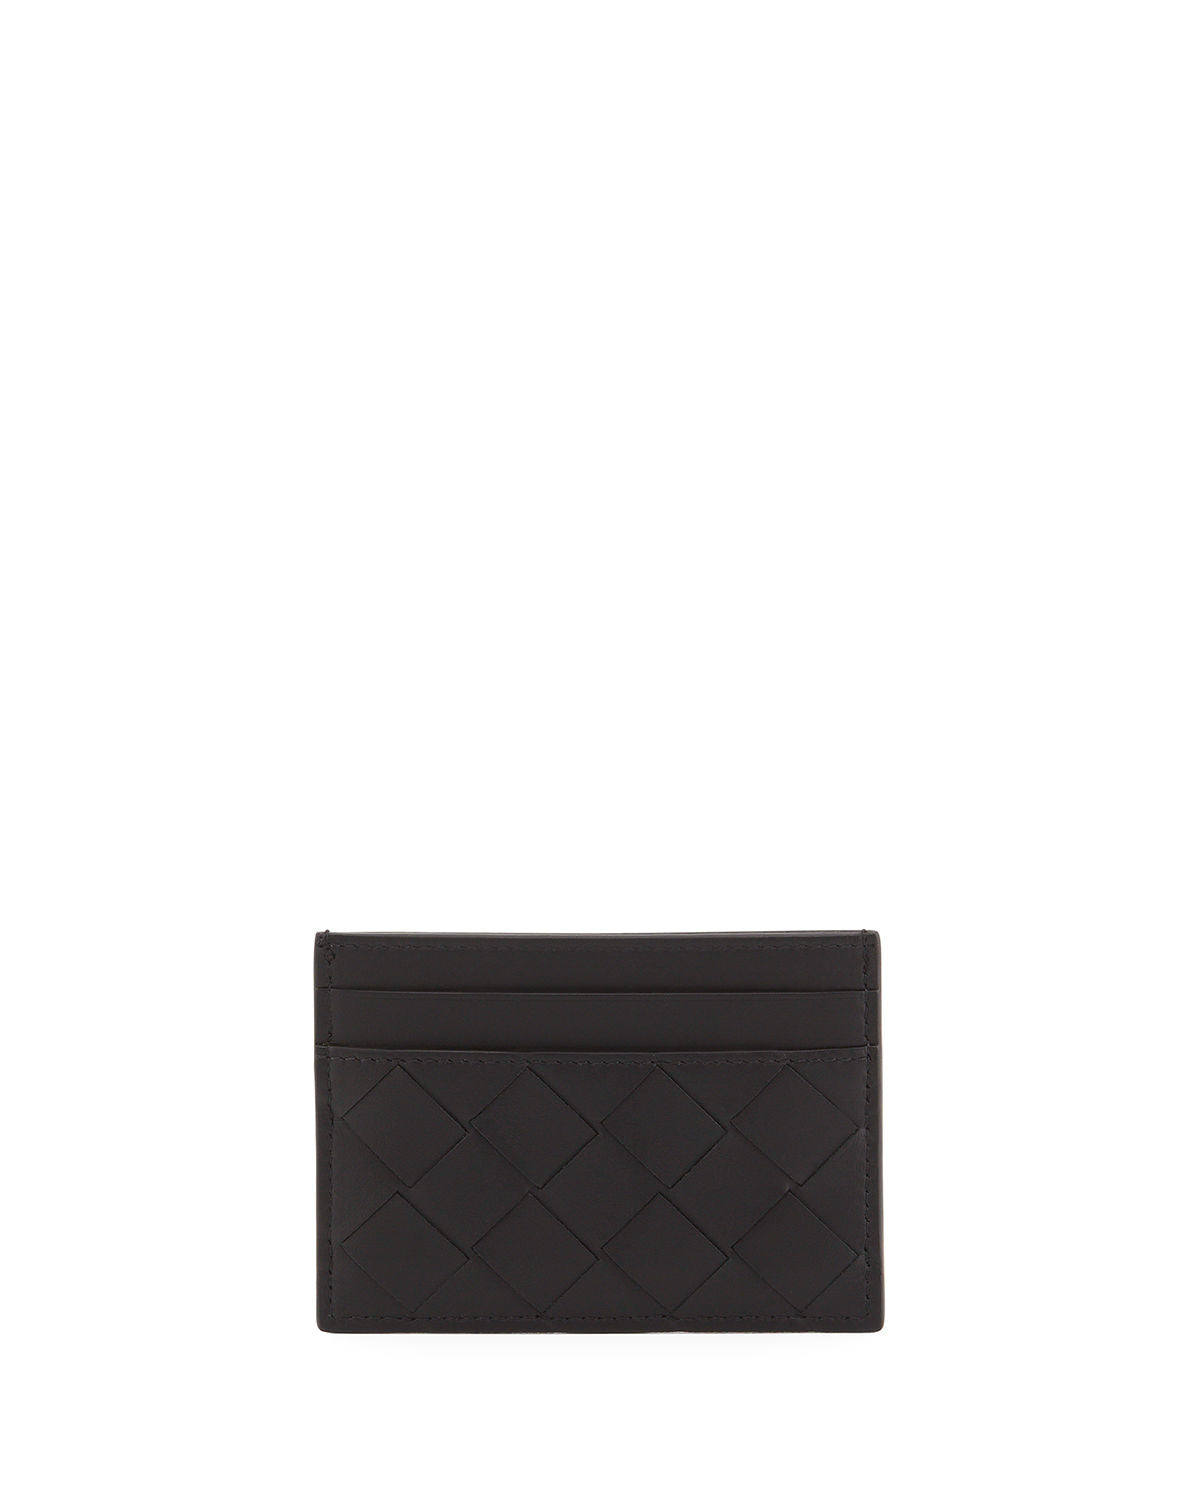 Bottega Veneta Woven Card Case